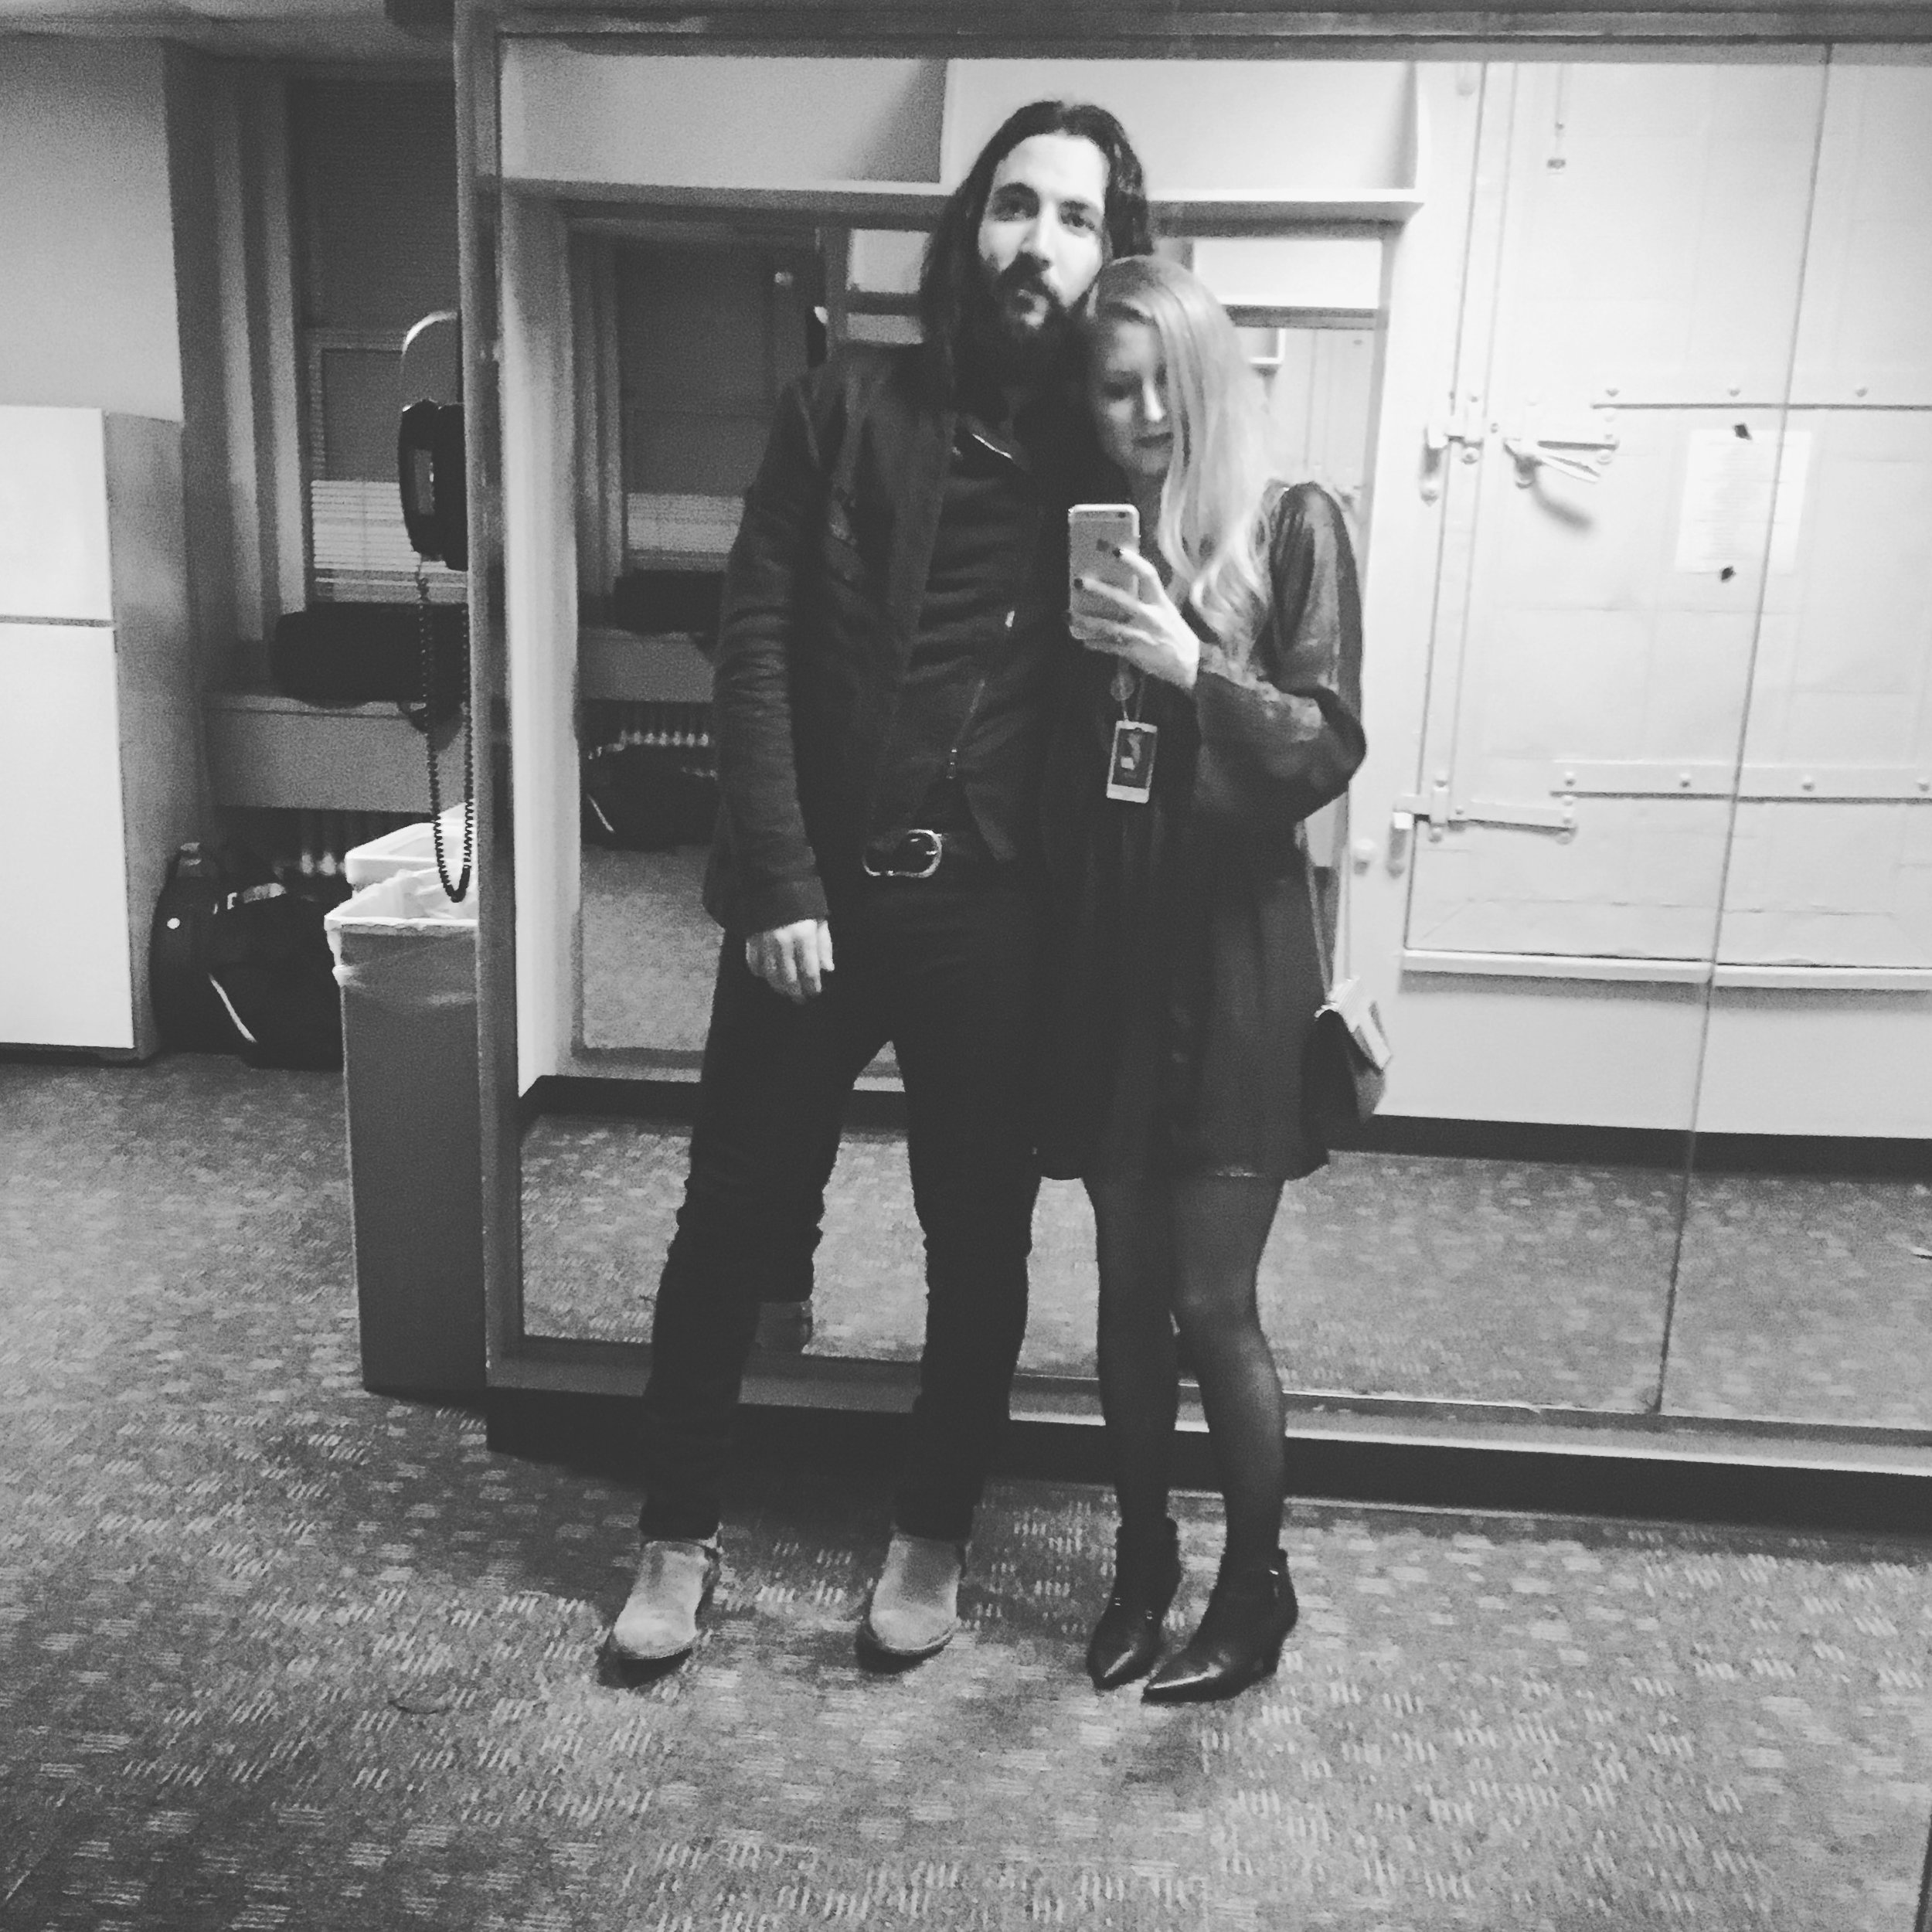 Hey guys. This is us backstage at Radio City when Ron performed at a David Bowie Tribute in 2016.